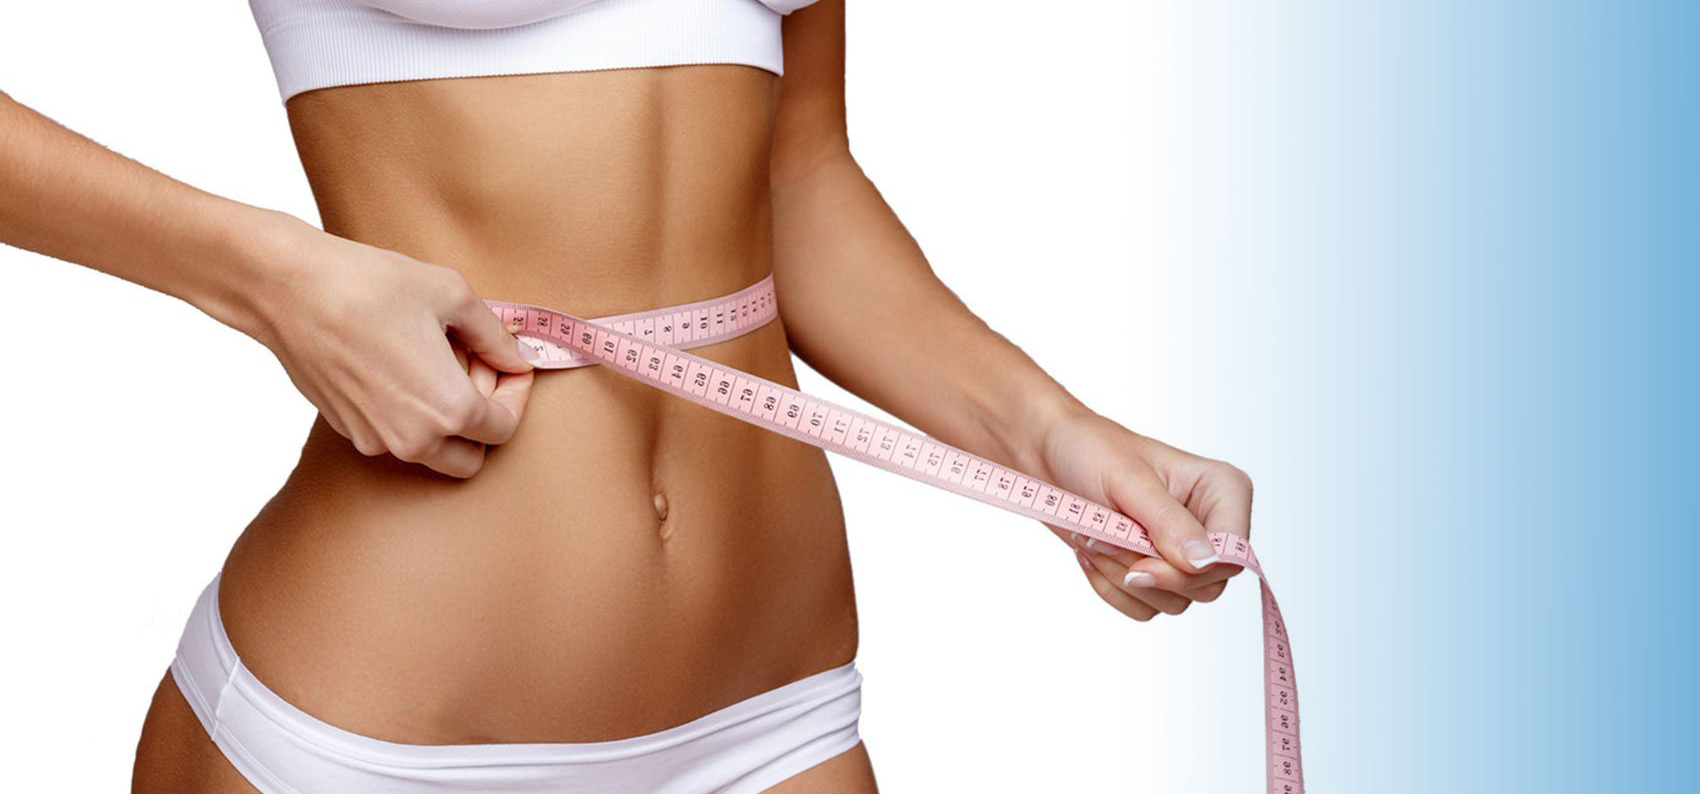 Keeping Your Muffin Top Away This Holiday Season